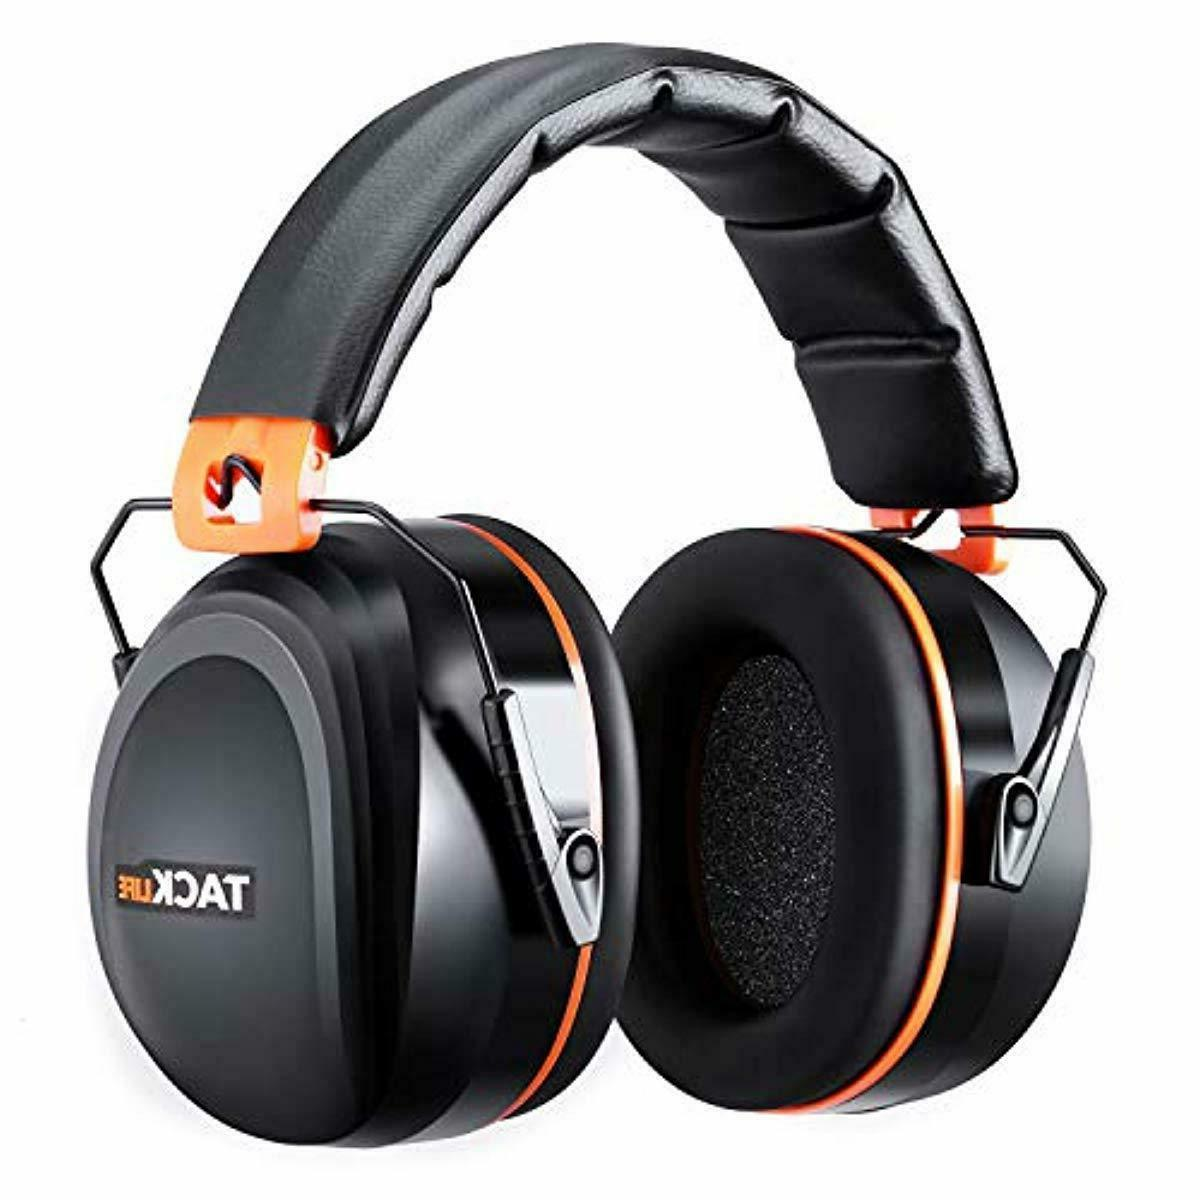 headphones ear protection hearing muffs shooting noise